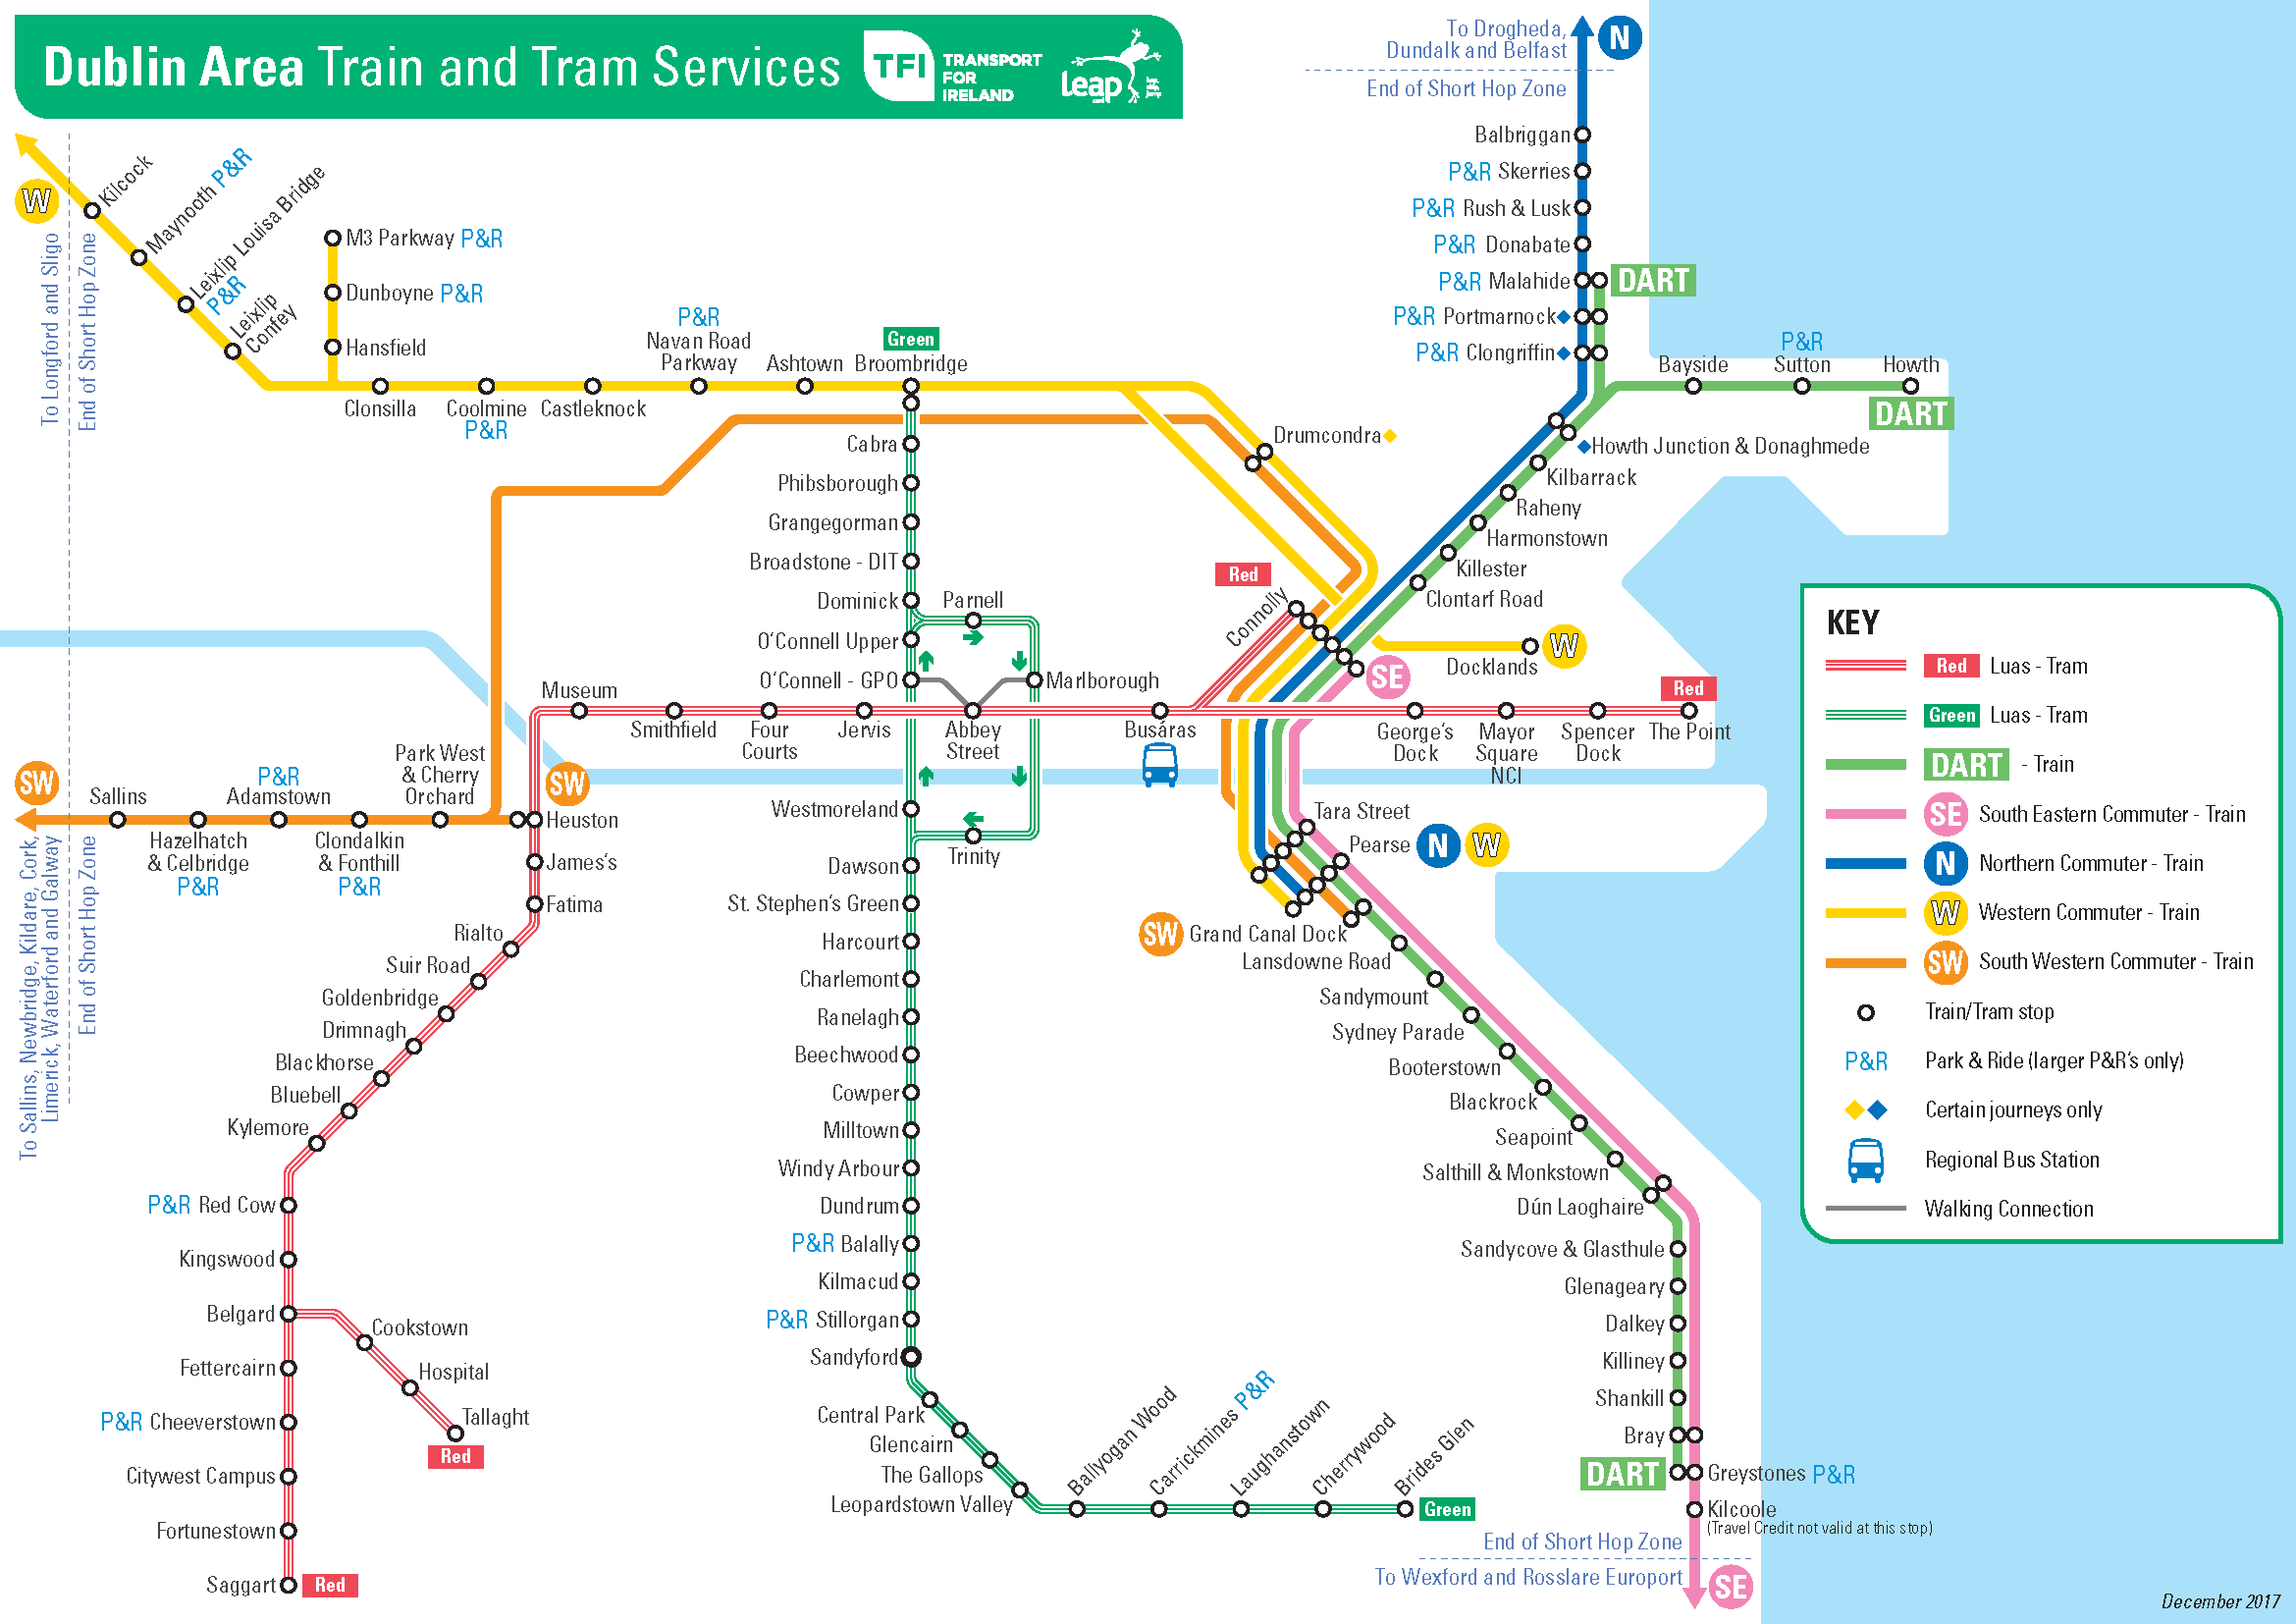 Transport For Ireland - Maps Of Public Transport Services -